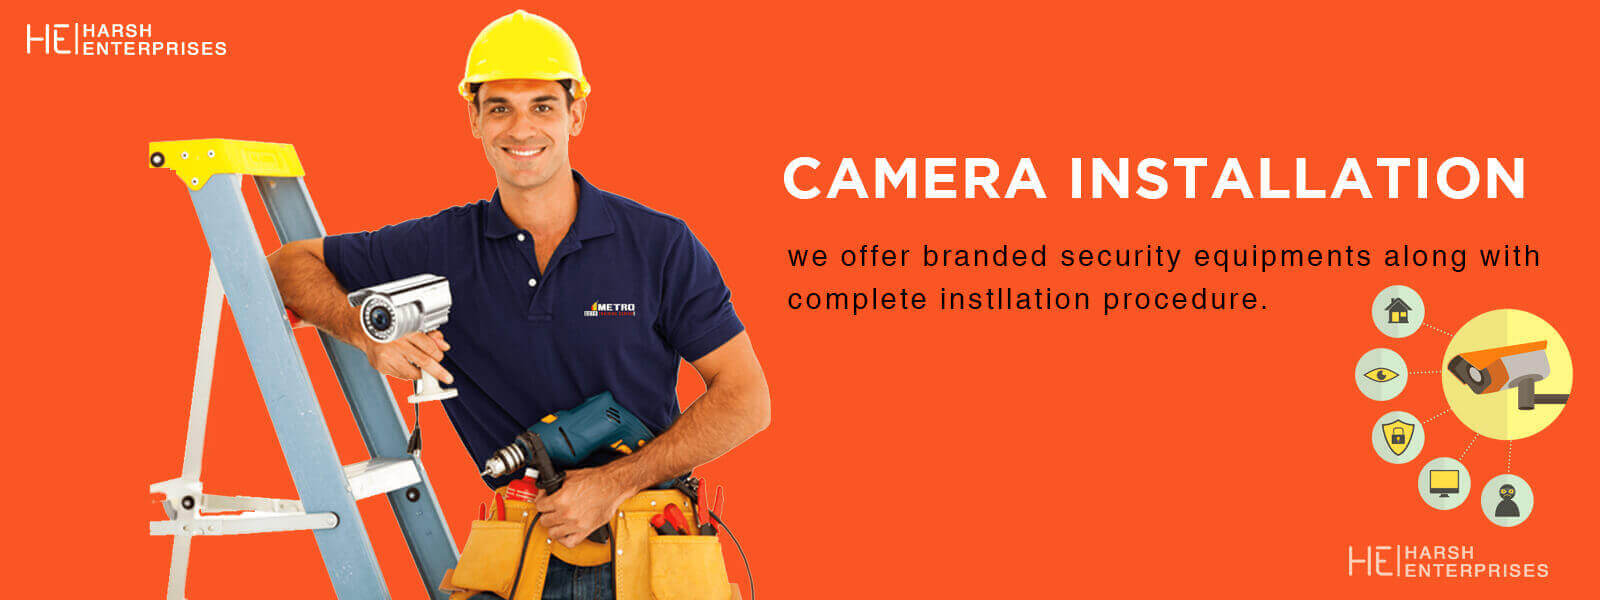 cctv camera installation in patna